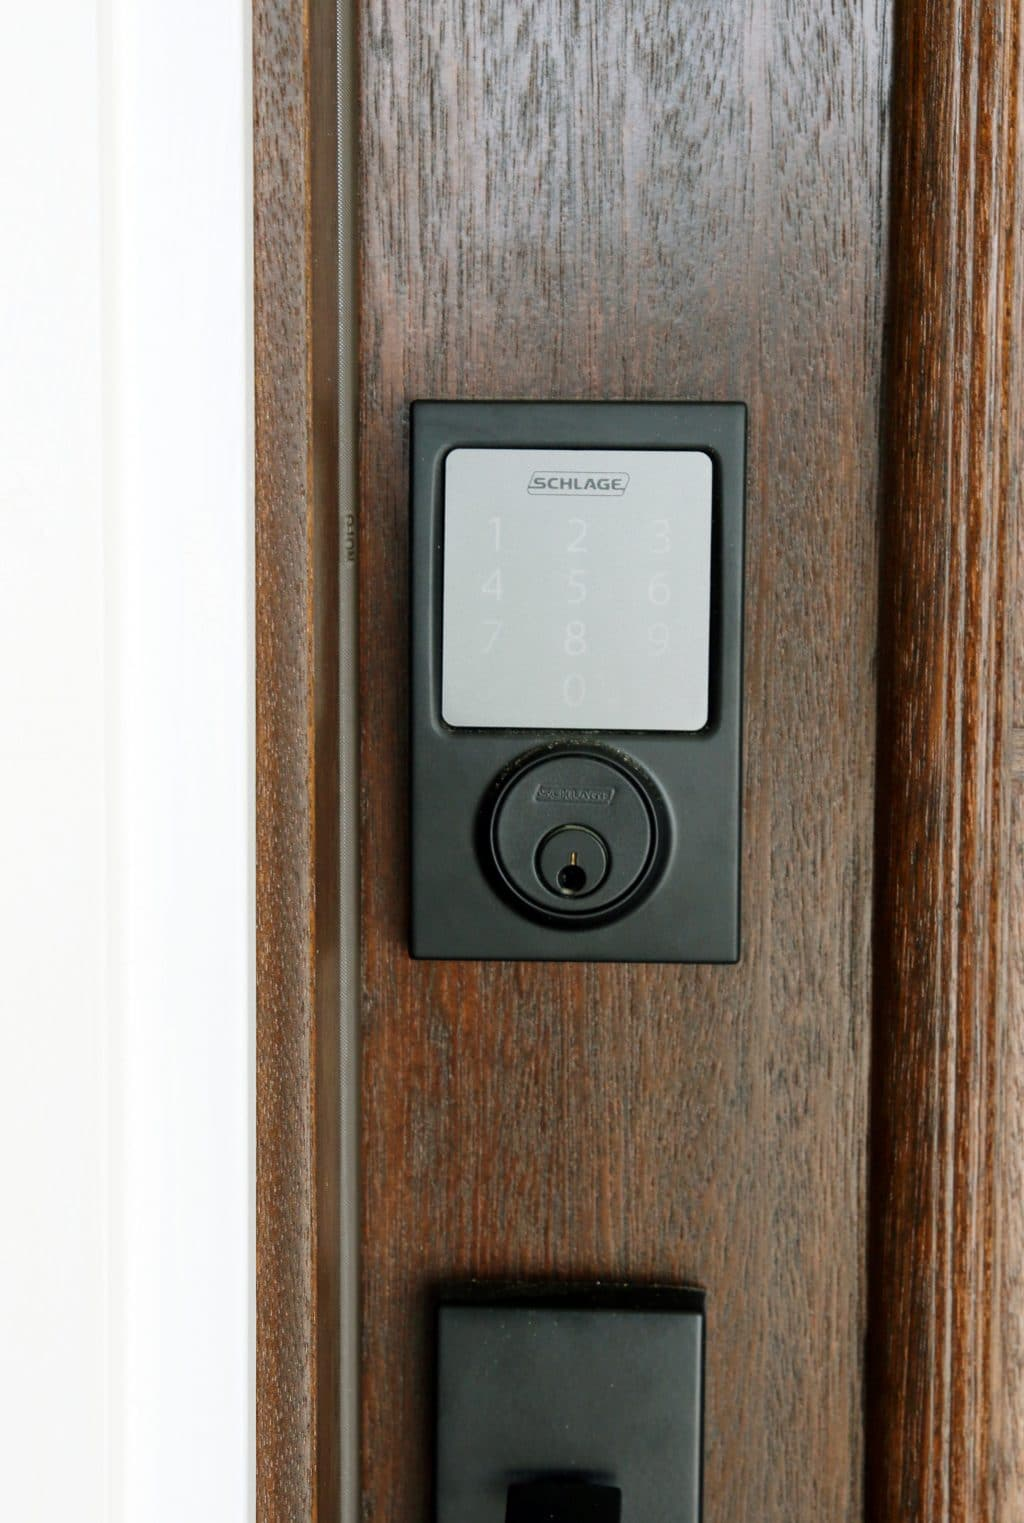 Sneak peek at the new front door schlage giveaway for New front door